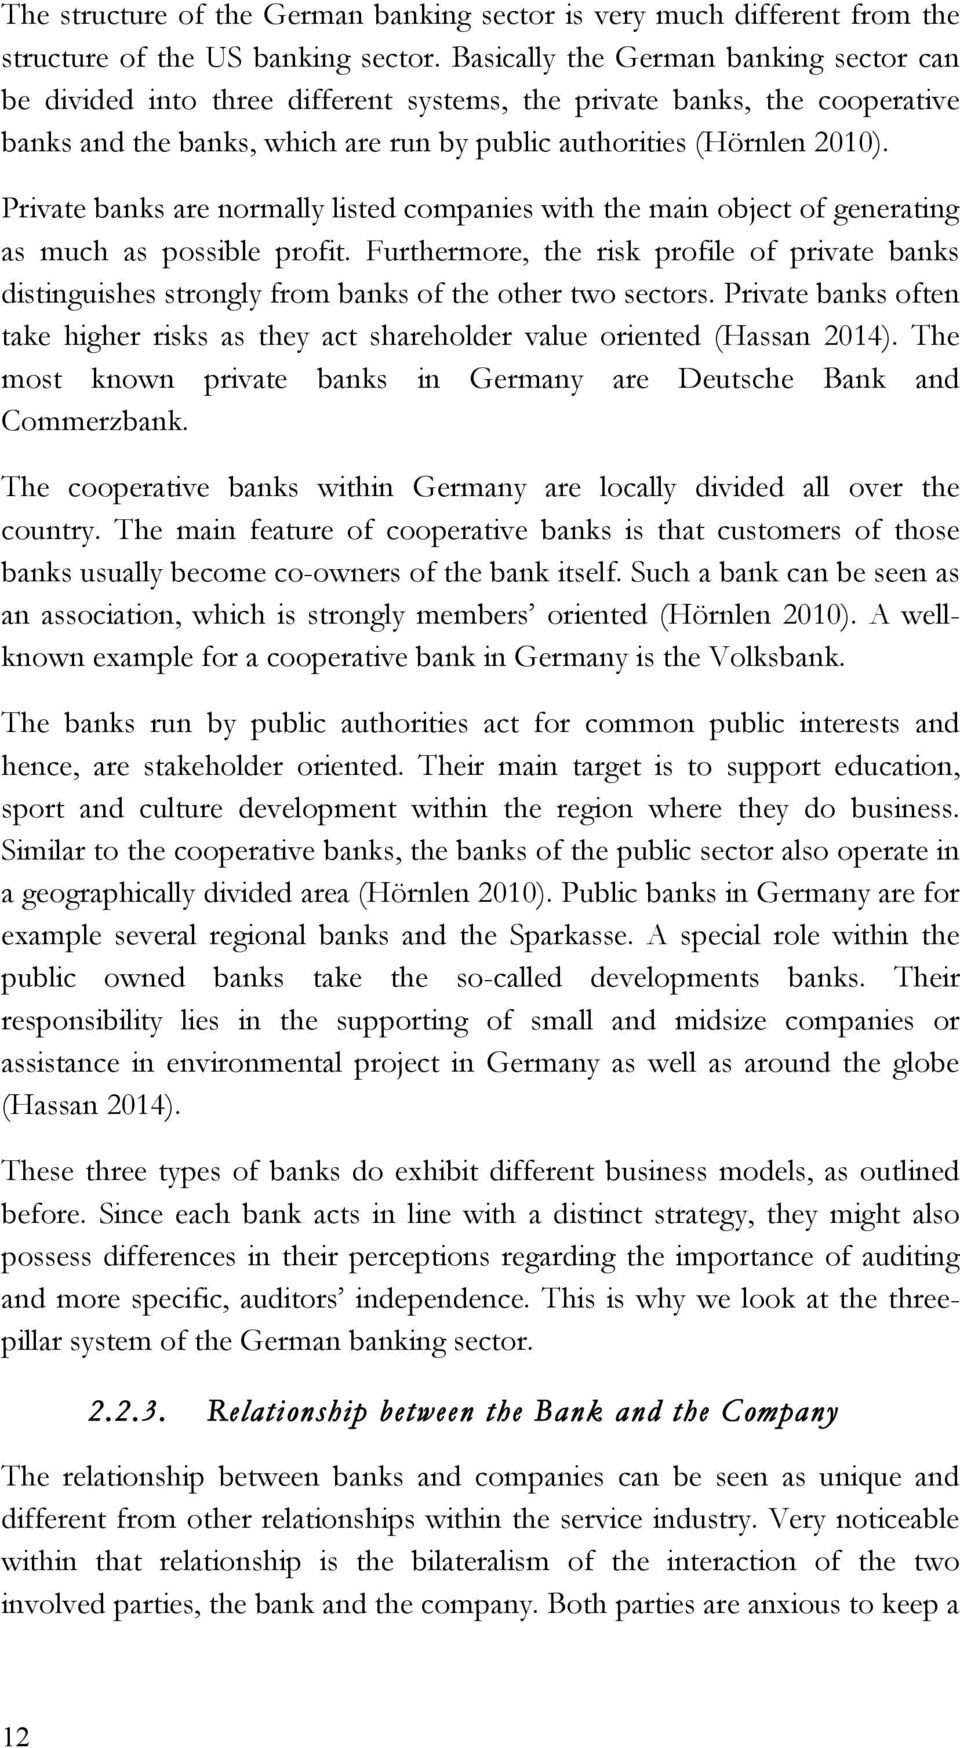 Private banks are normally listed companies with the main object of generating as much as possible profit.